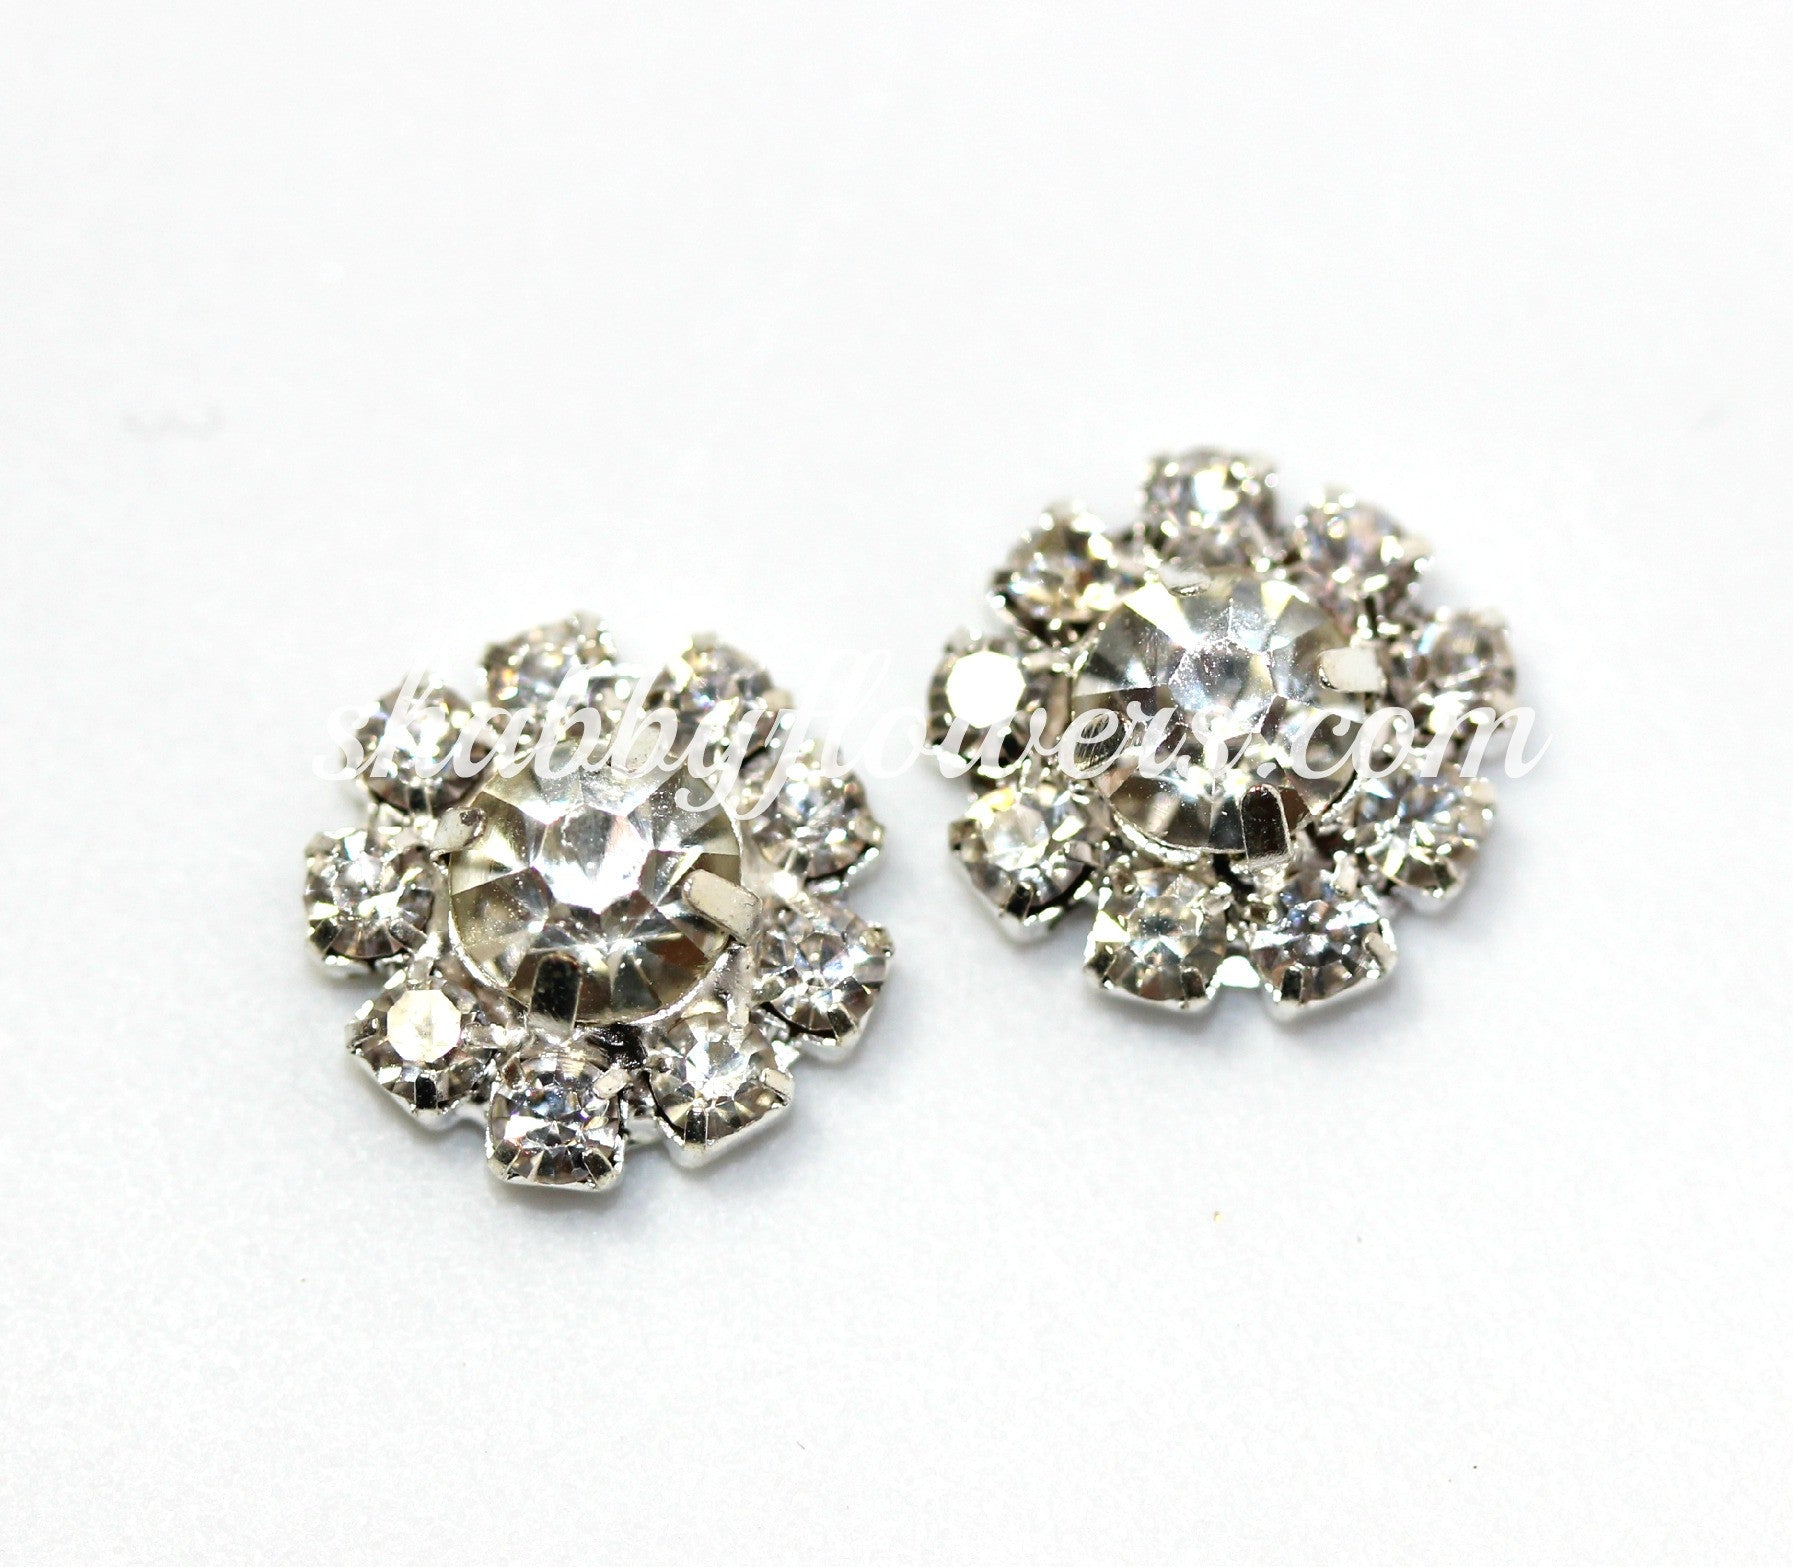 Embellishment - SILVER Small Rhinestone in CLEAR - shabbyflowers.com